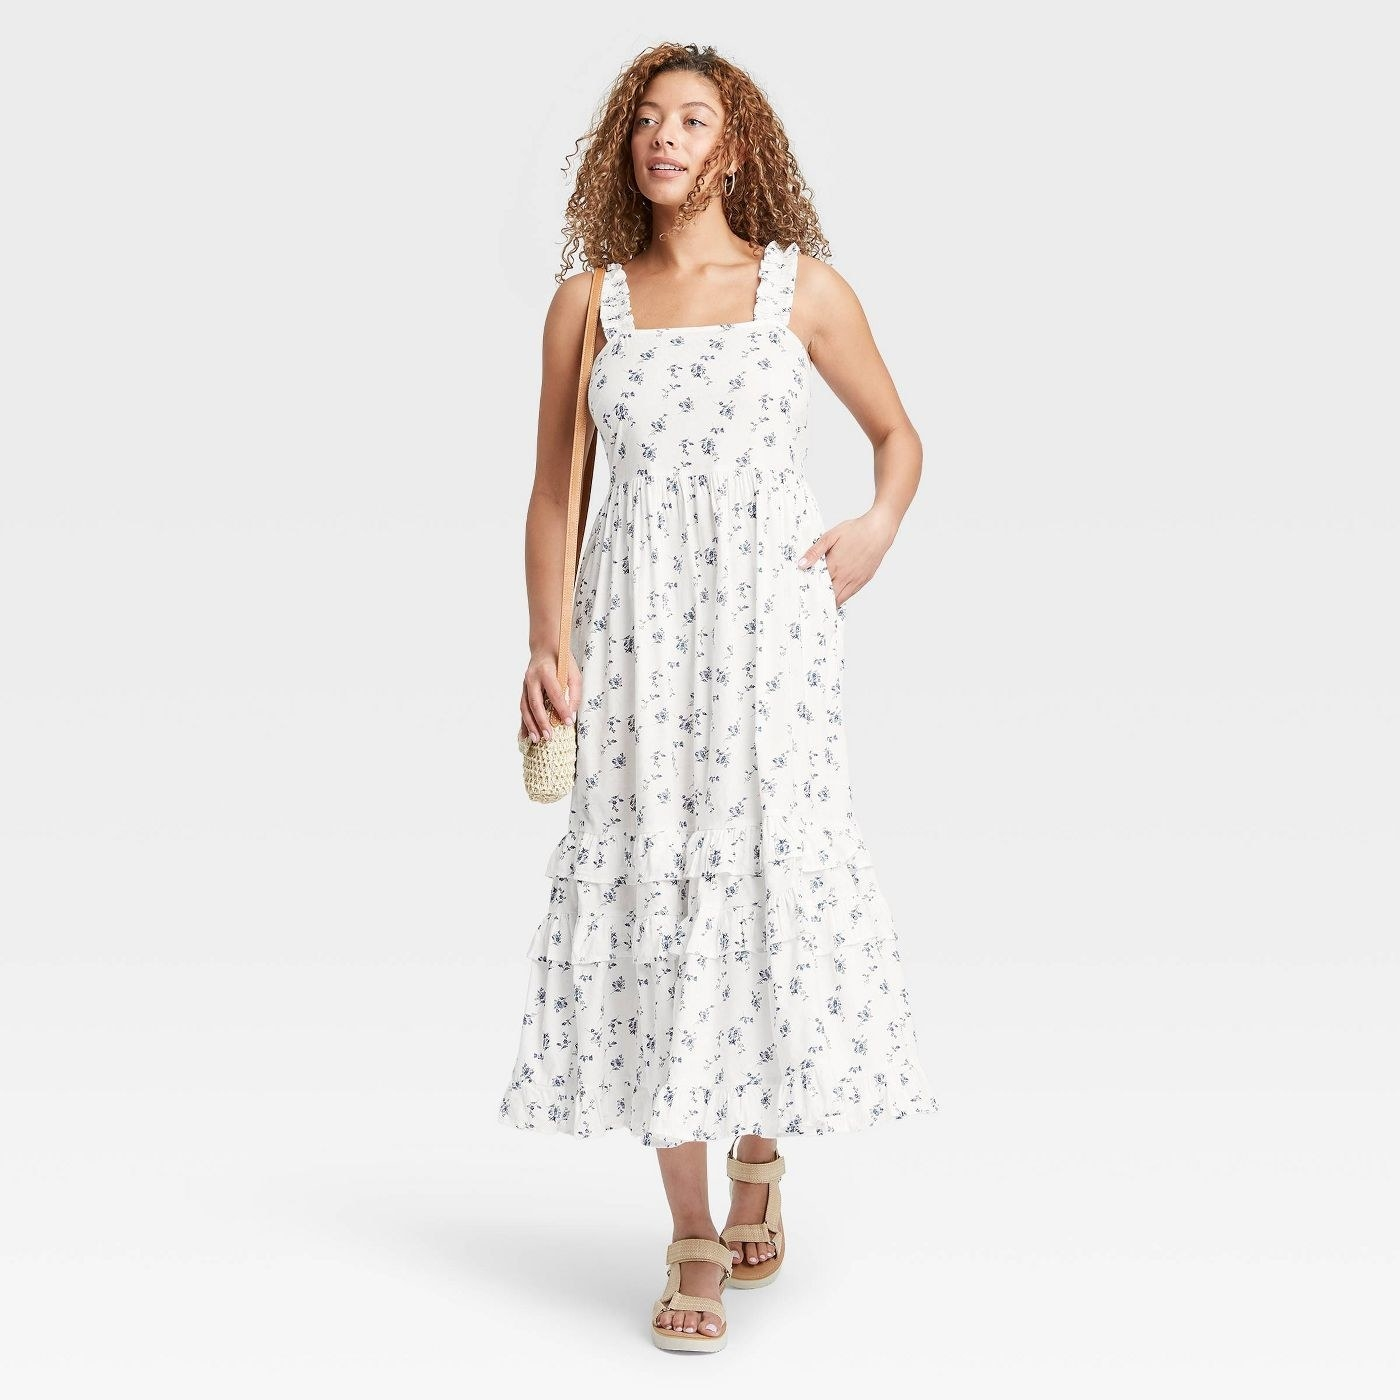 Model wearing white maxi dress with purple flowers